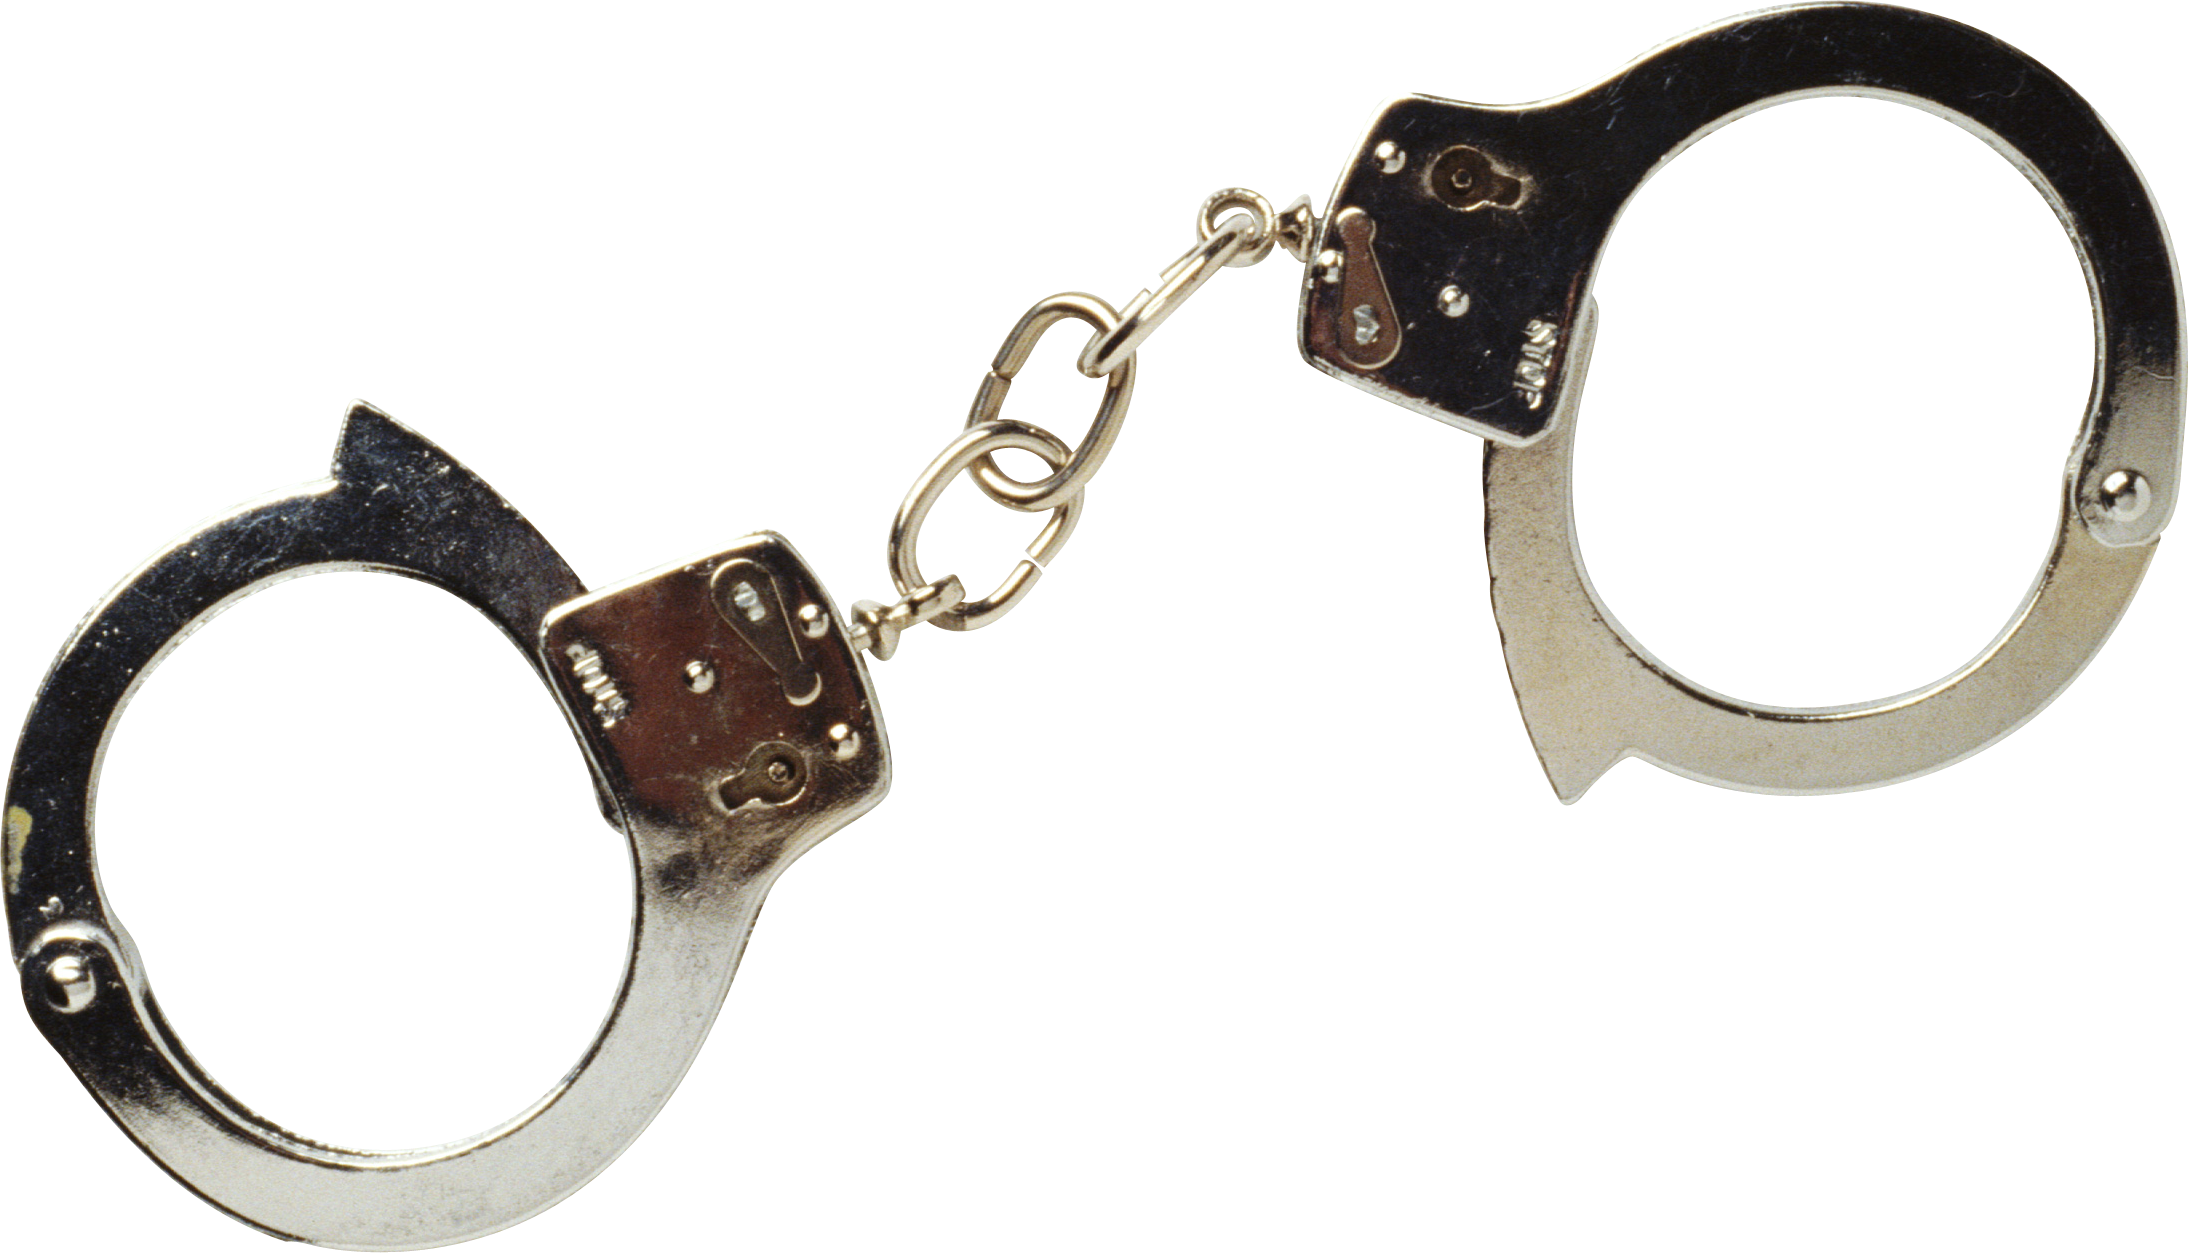 Golden handcuff png image. Handcuffs clipart used police